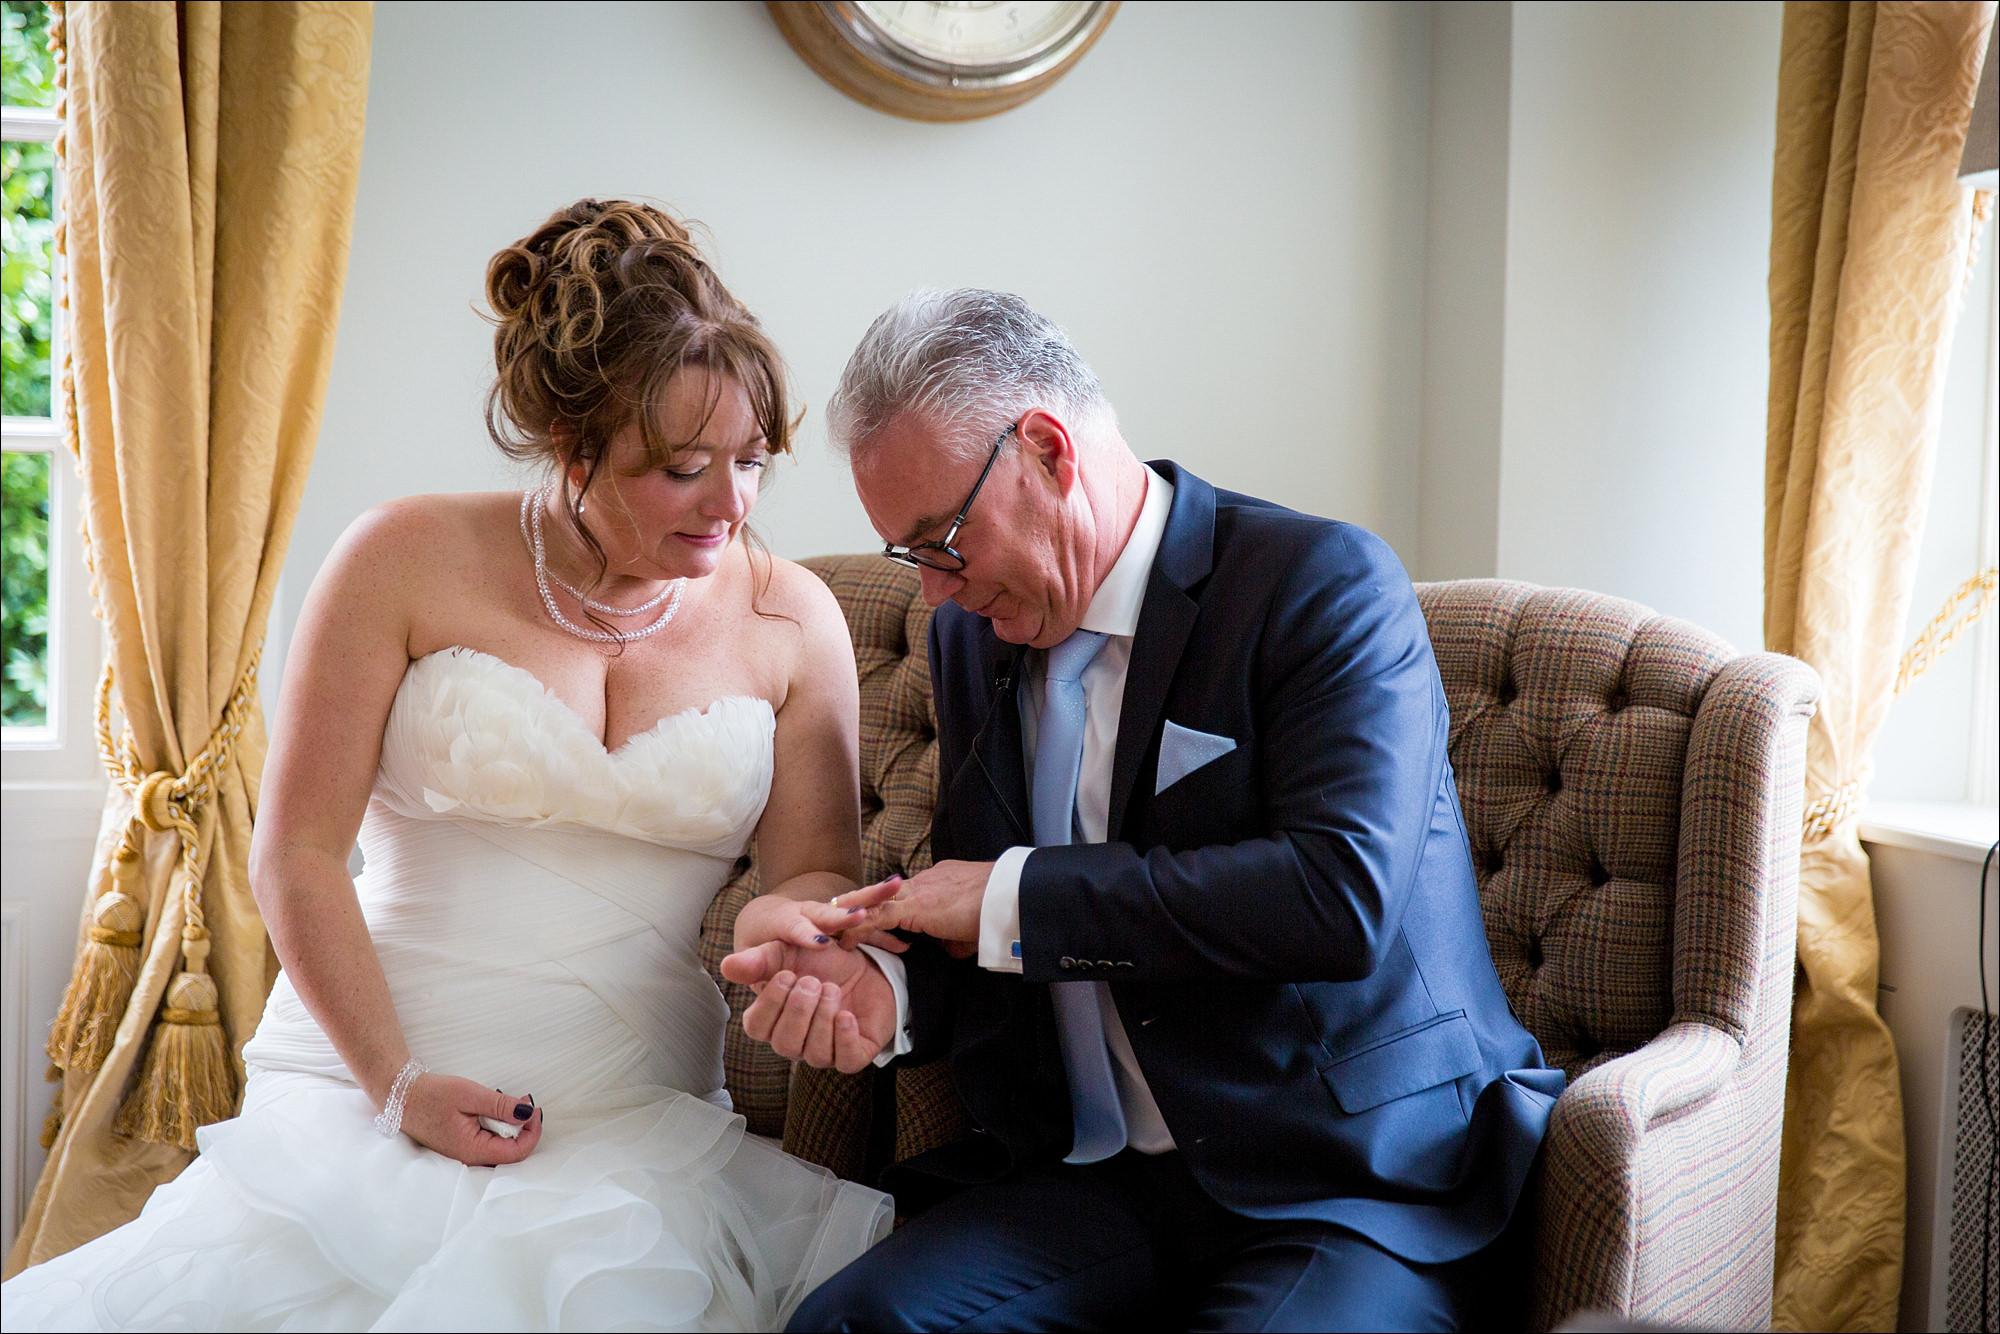 wedding photographer dublin david duignan photography real weddings Ireland 55